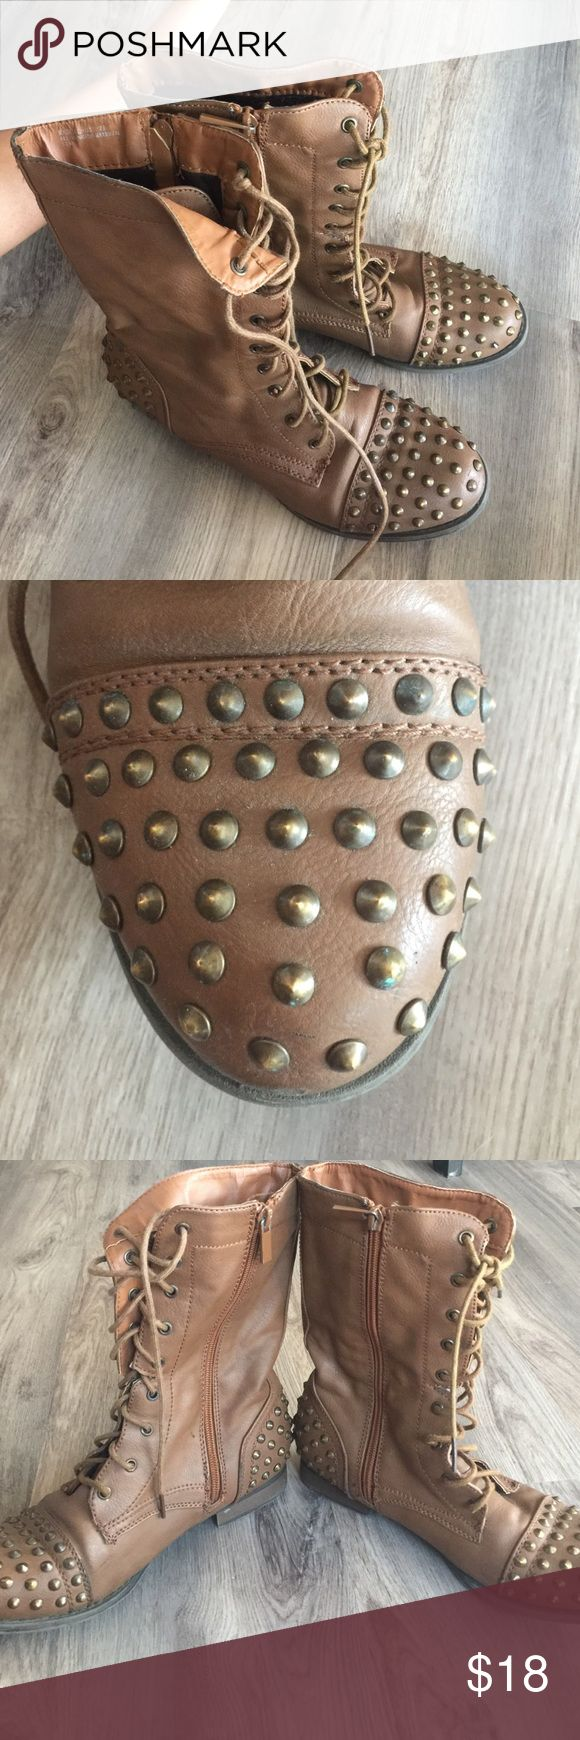 brown studded combat boots super cute brown combat boots, lace up & zipper on the side, good condition, brown shoes on front and back Shoes Combat & Moto Boots